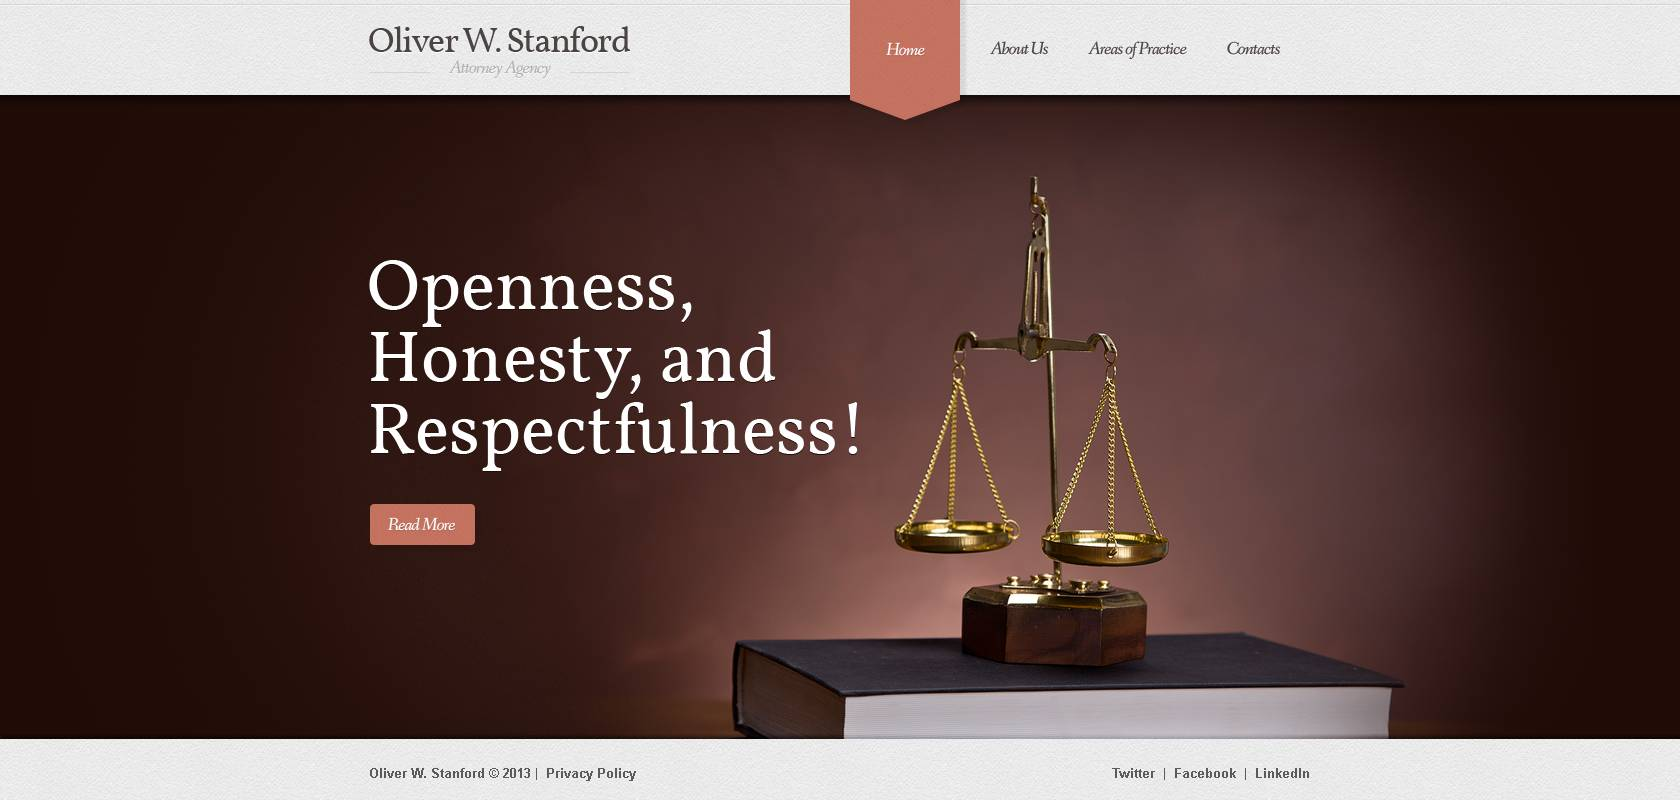 Law Website Templates